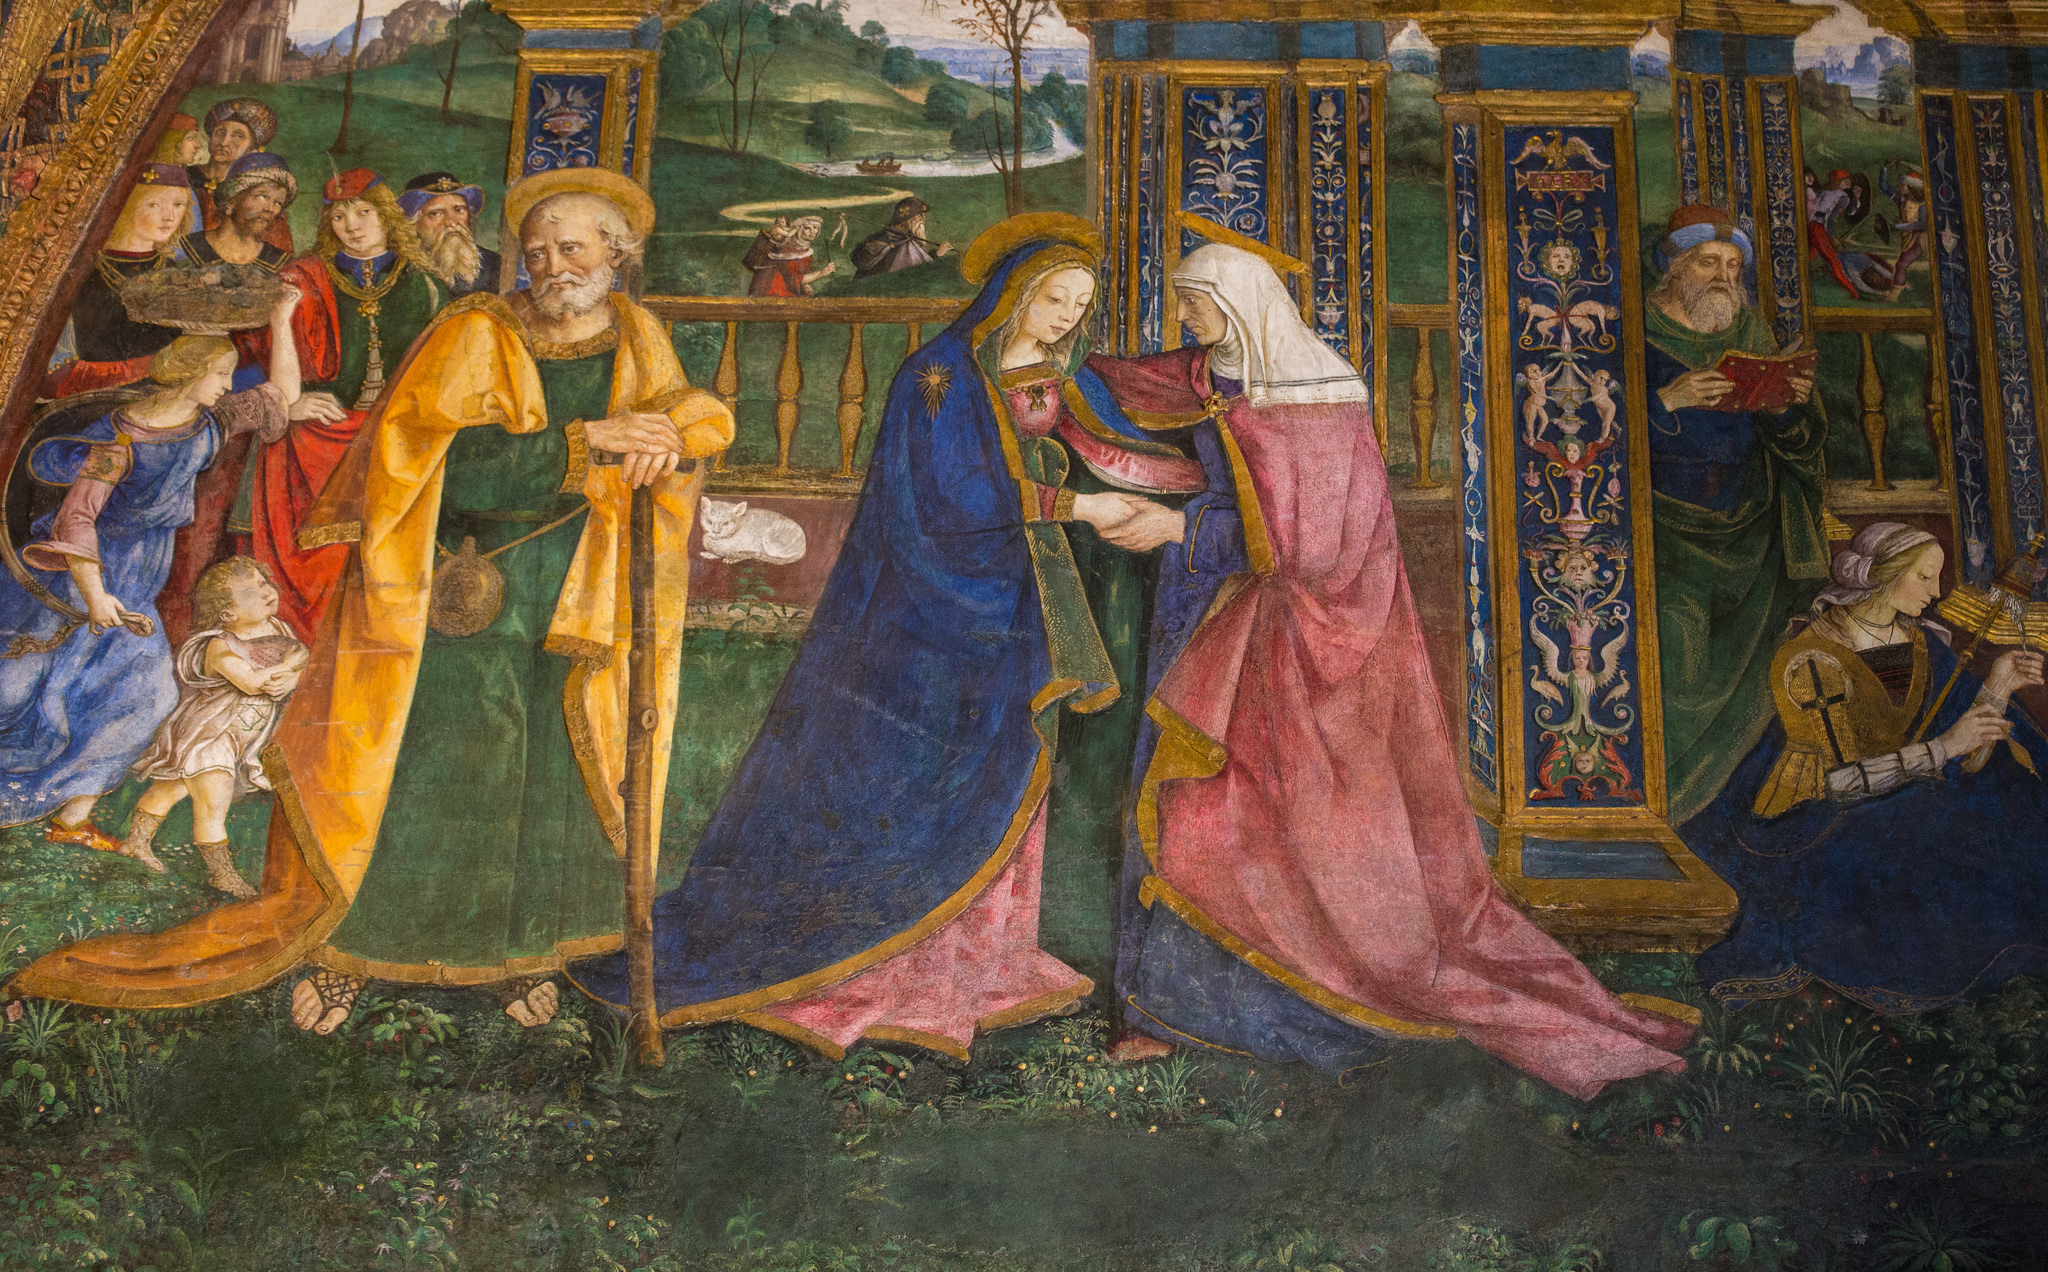 Pinturricchio - The Visitation of the Virgin Mary to Elisabeth with saint Joseph - Affresco from the Vatican Museums